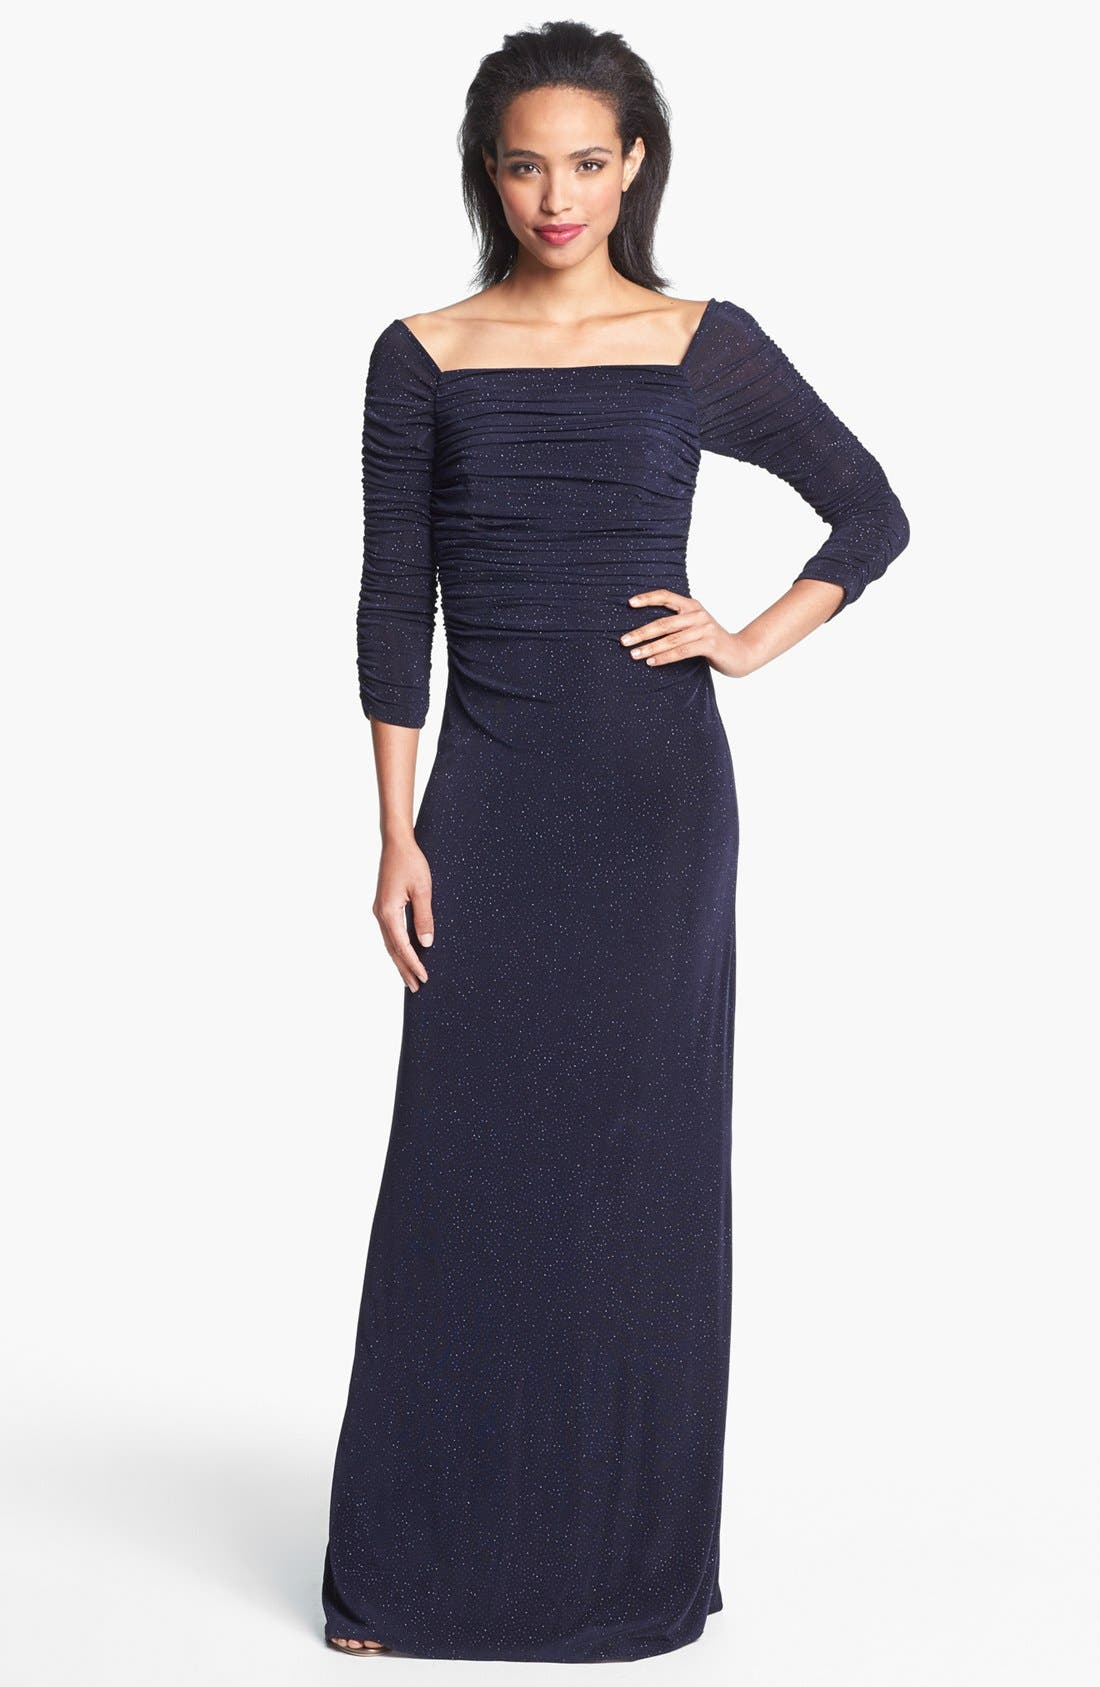 Alternate Image 1 Selected - Laundry by Shelli Segal Off Shoulder Glitzy Knit Gown